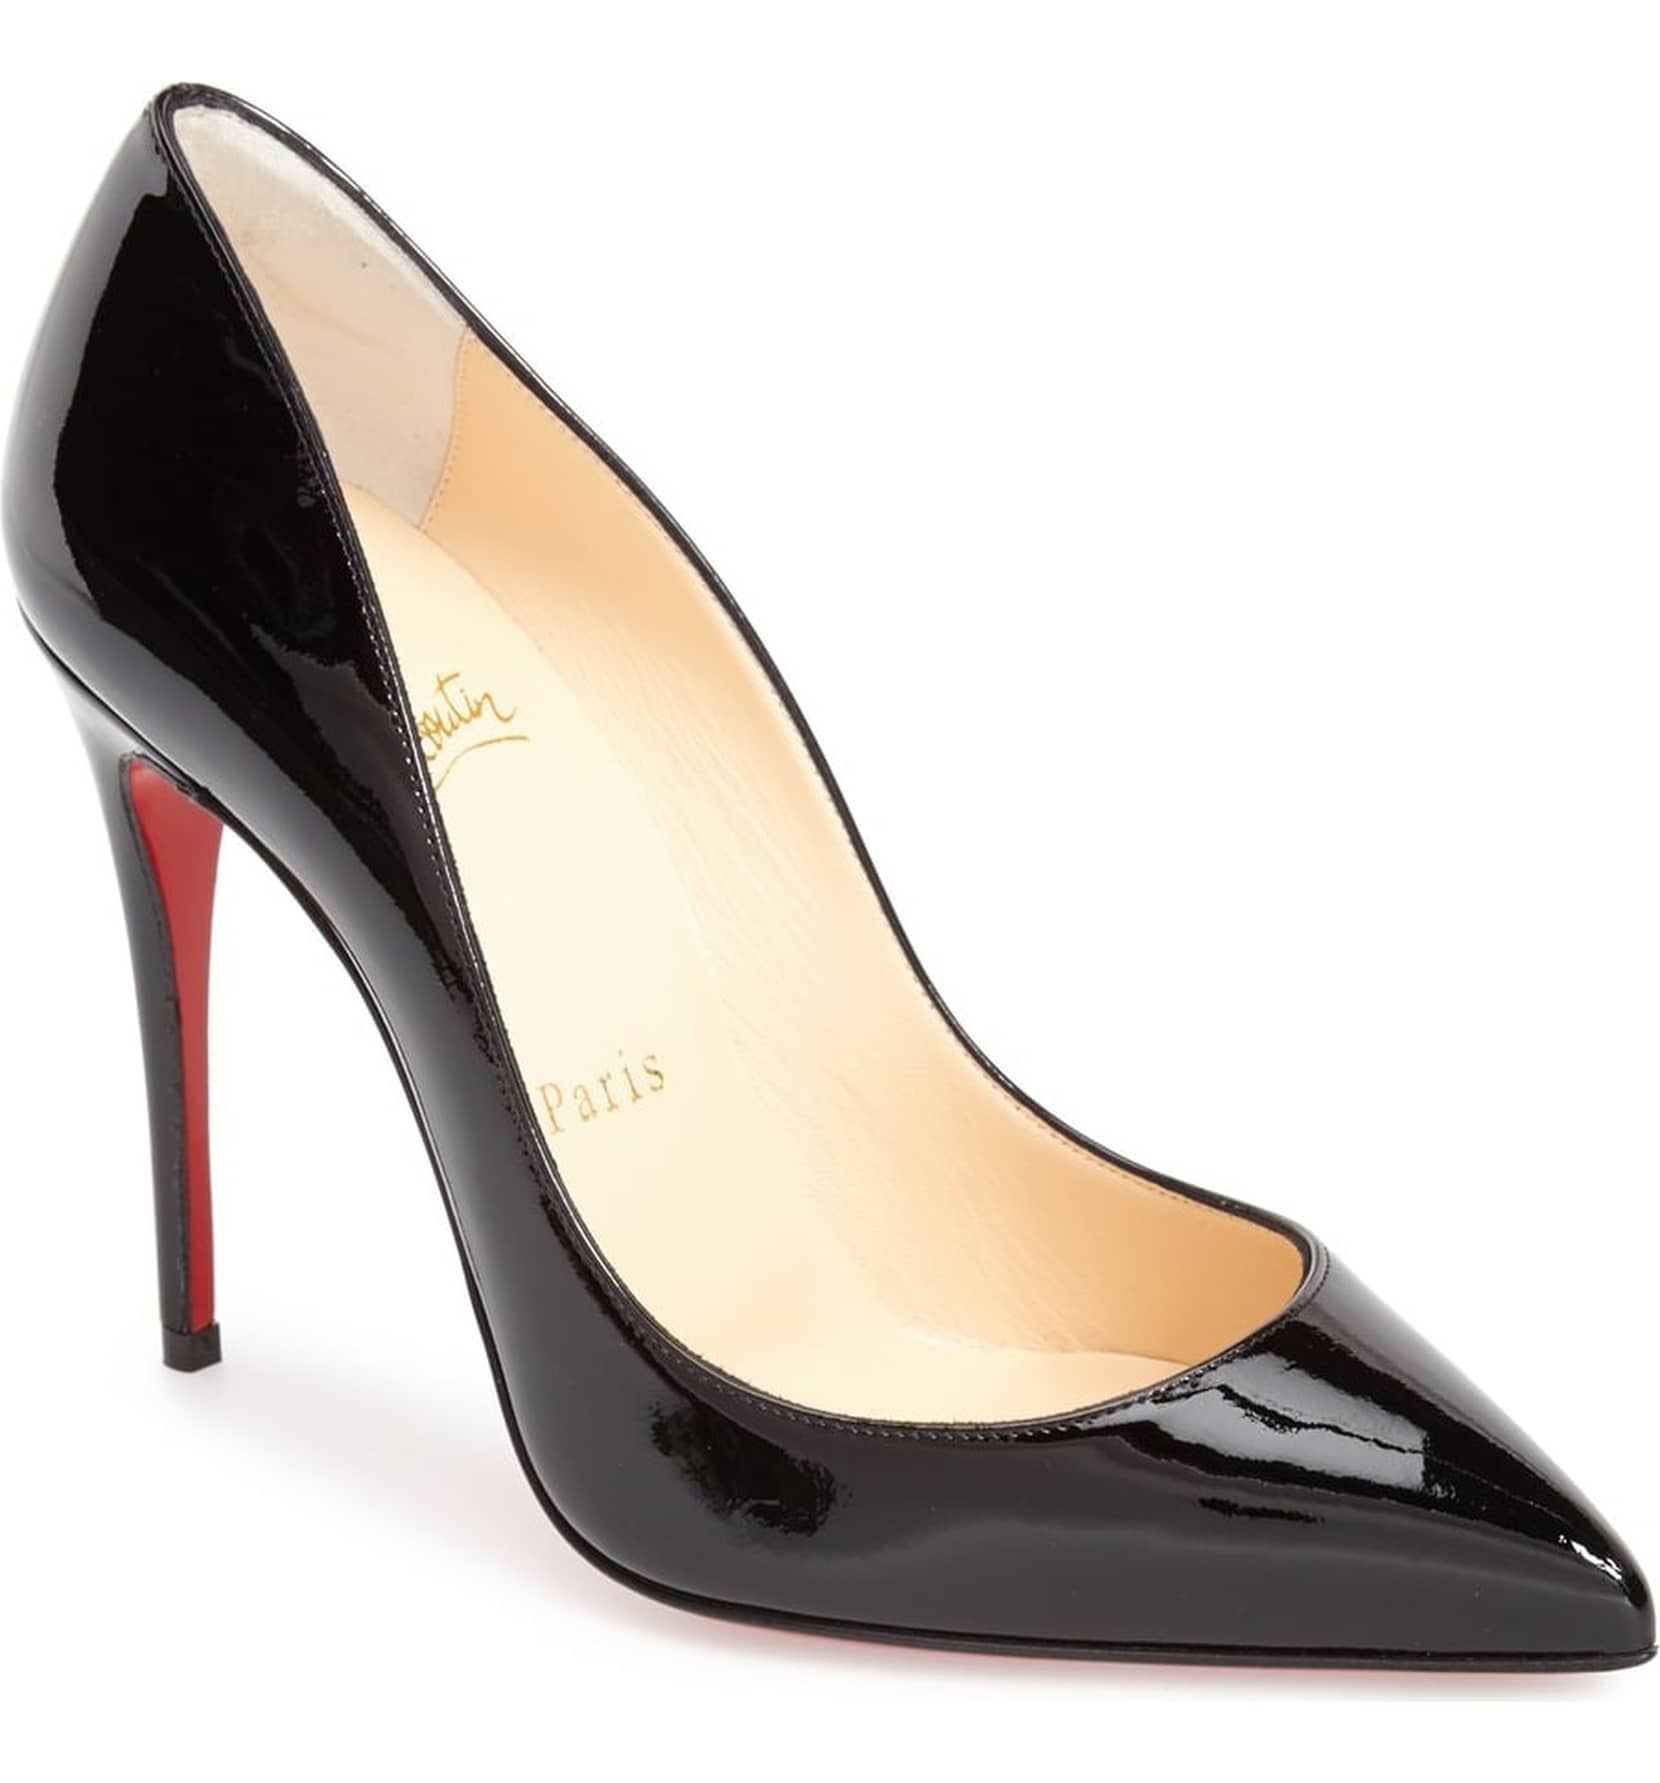 e87954cf5d8 Christian Louboutin Pumps Are at the Top of Our Holiday Wish List